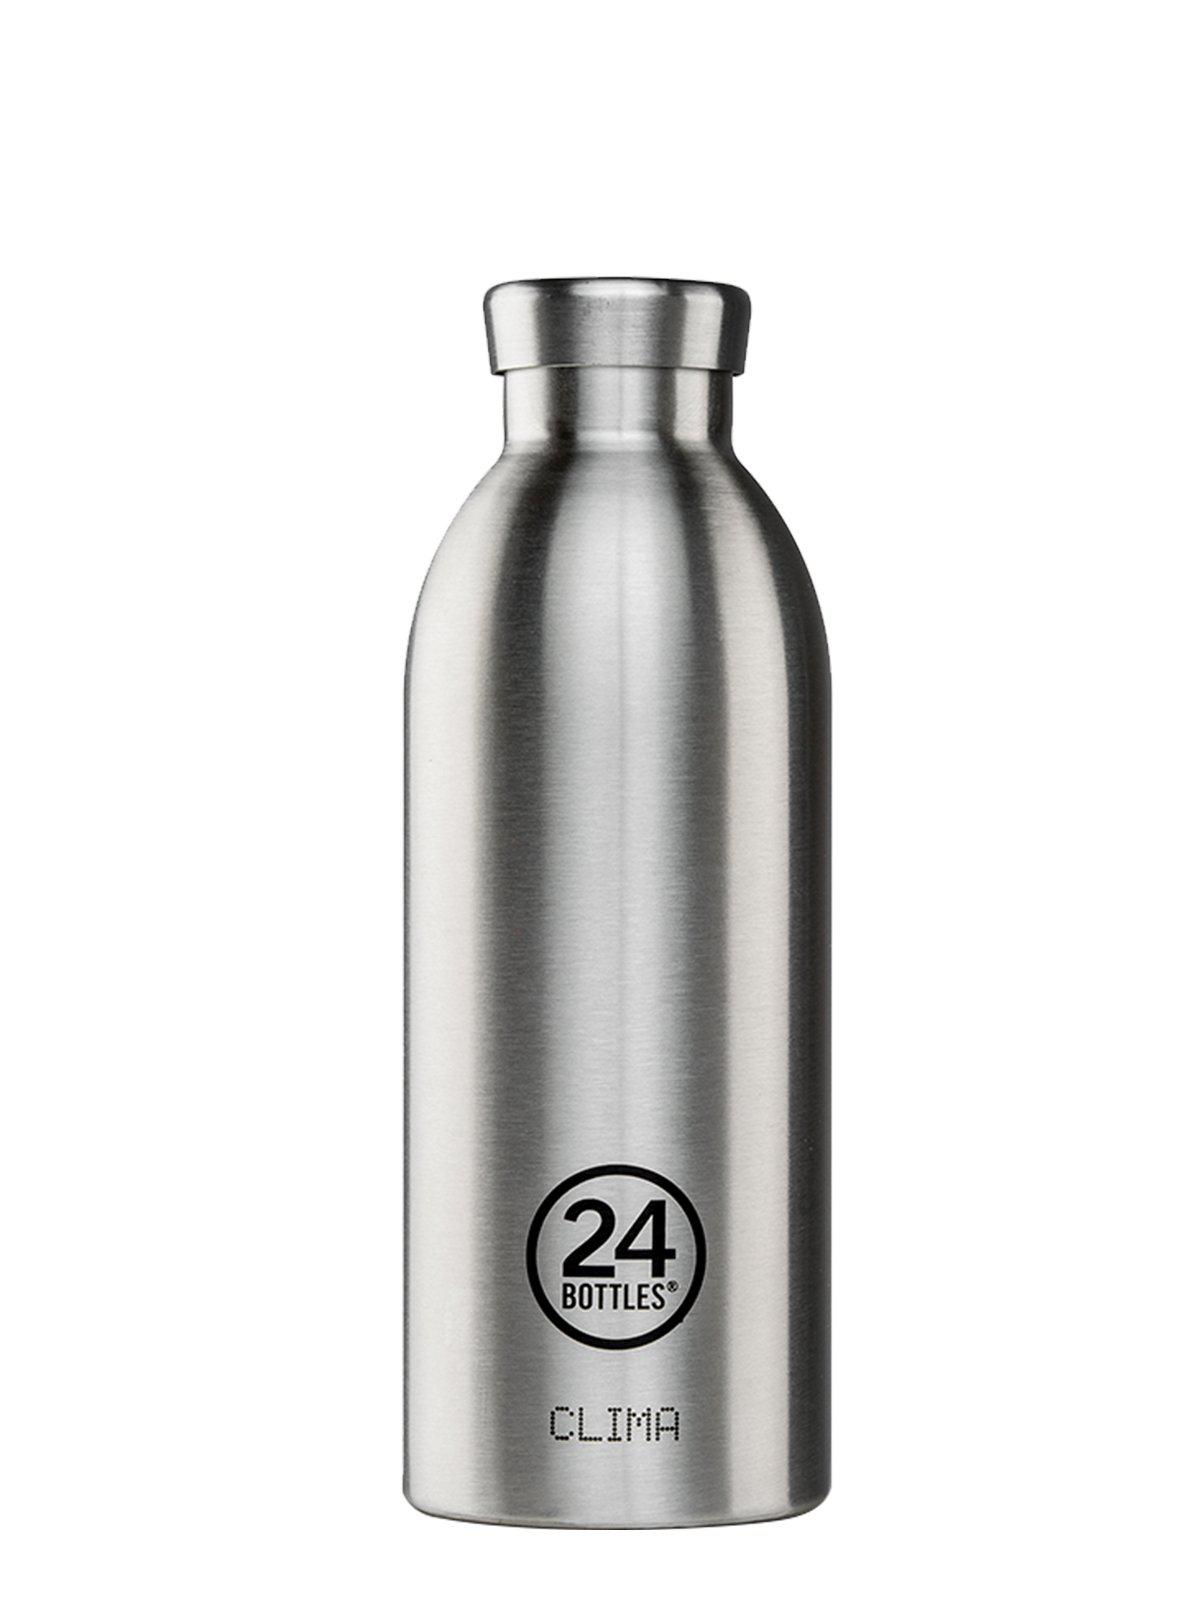 24Bottles Clima Bottle Steel 500ml - MORE by Morello - Indonesia